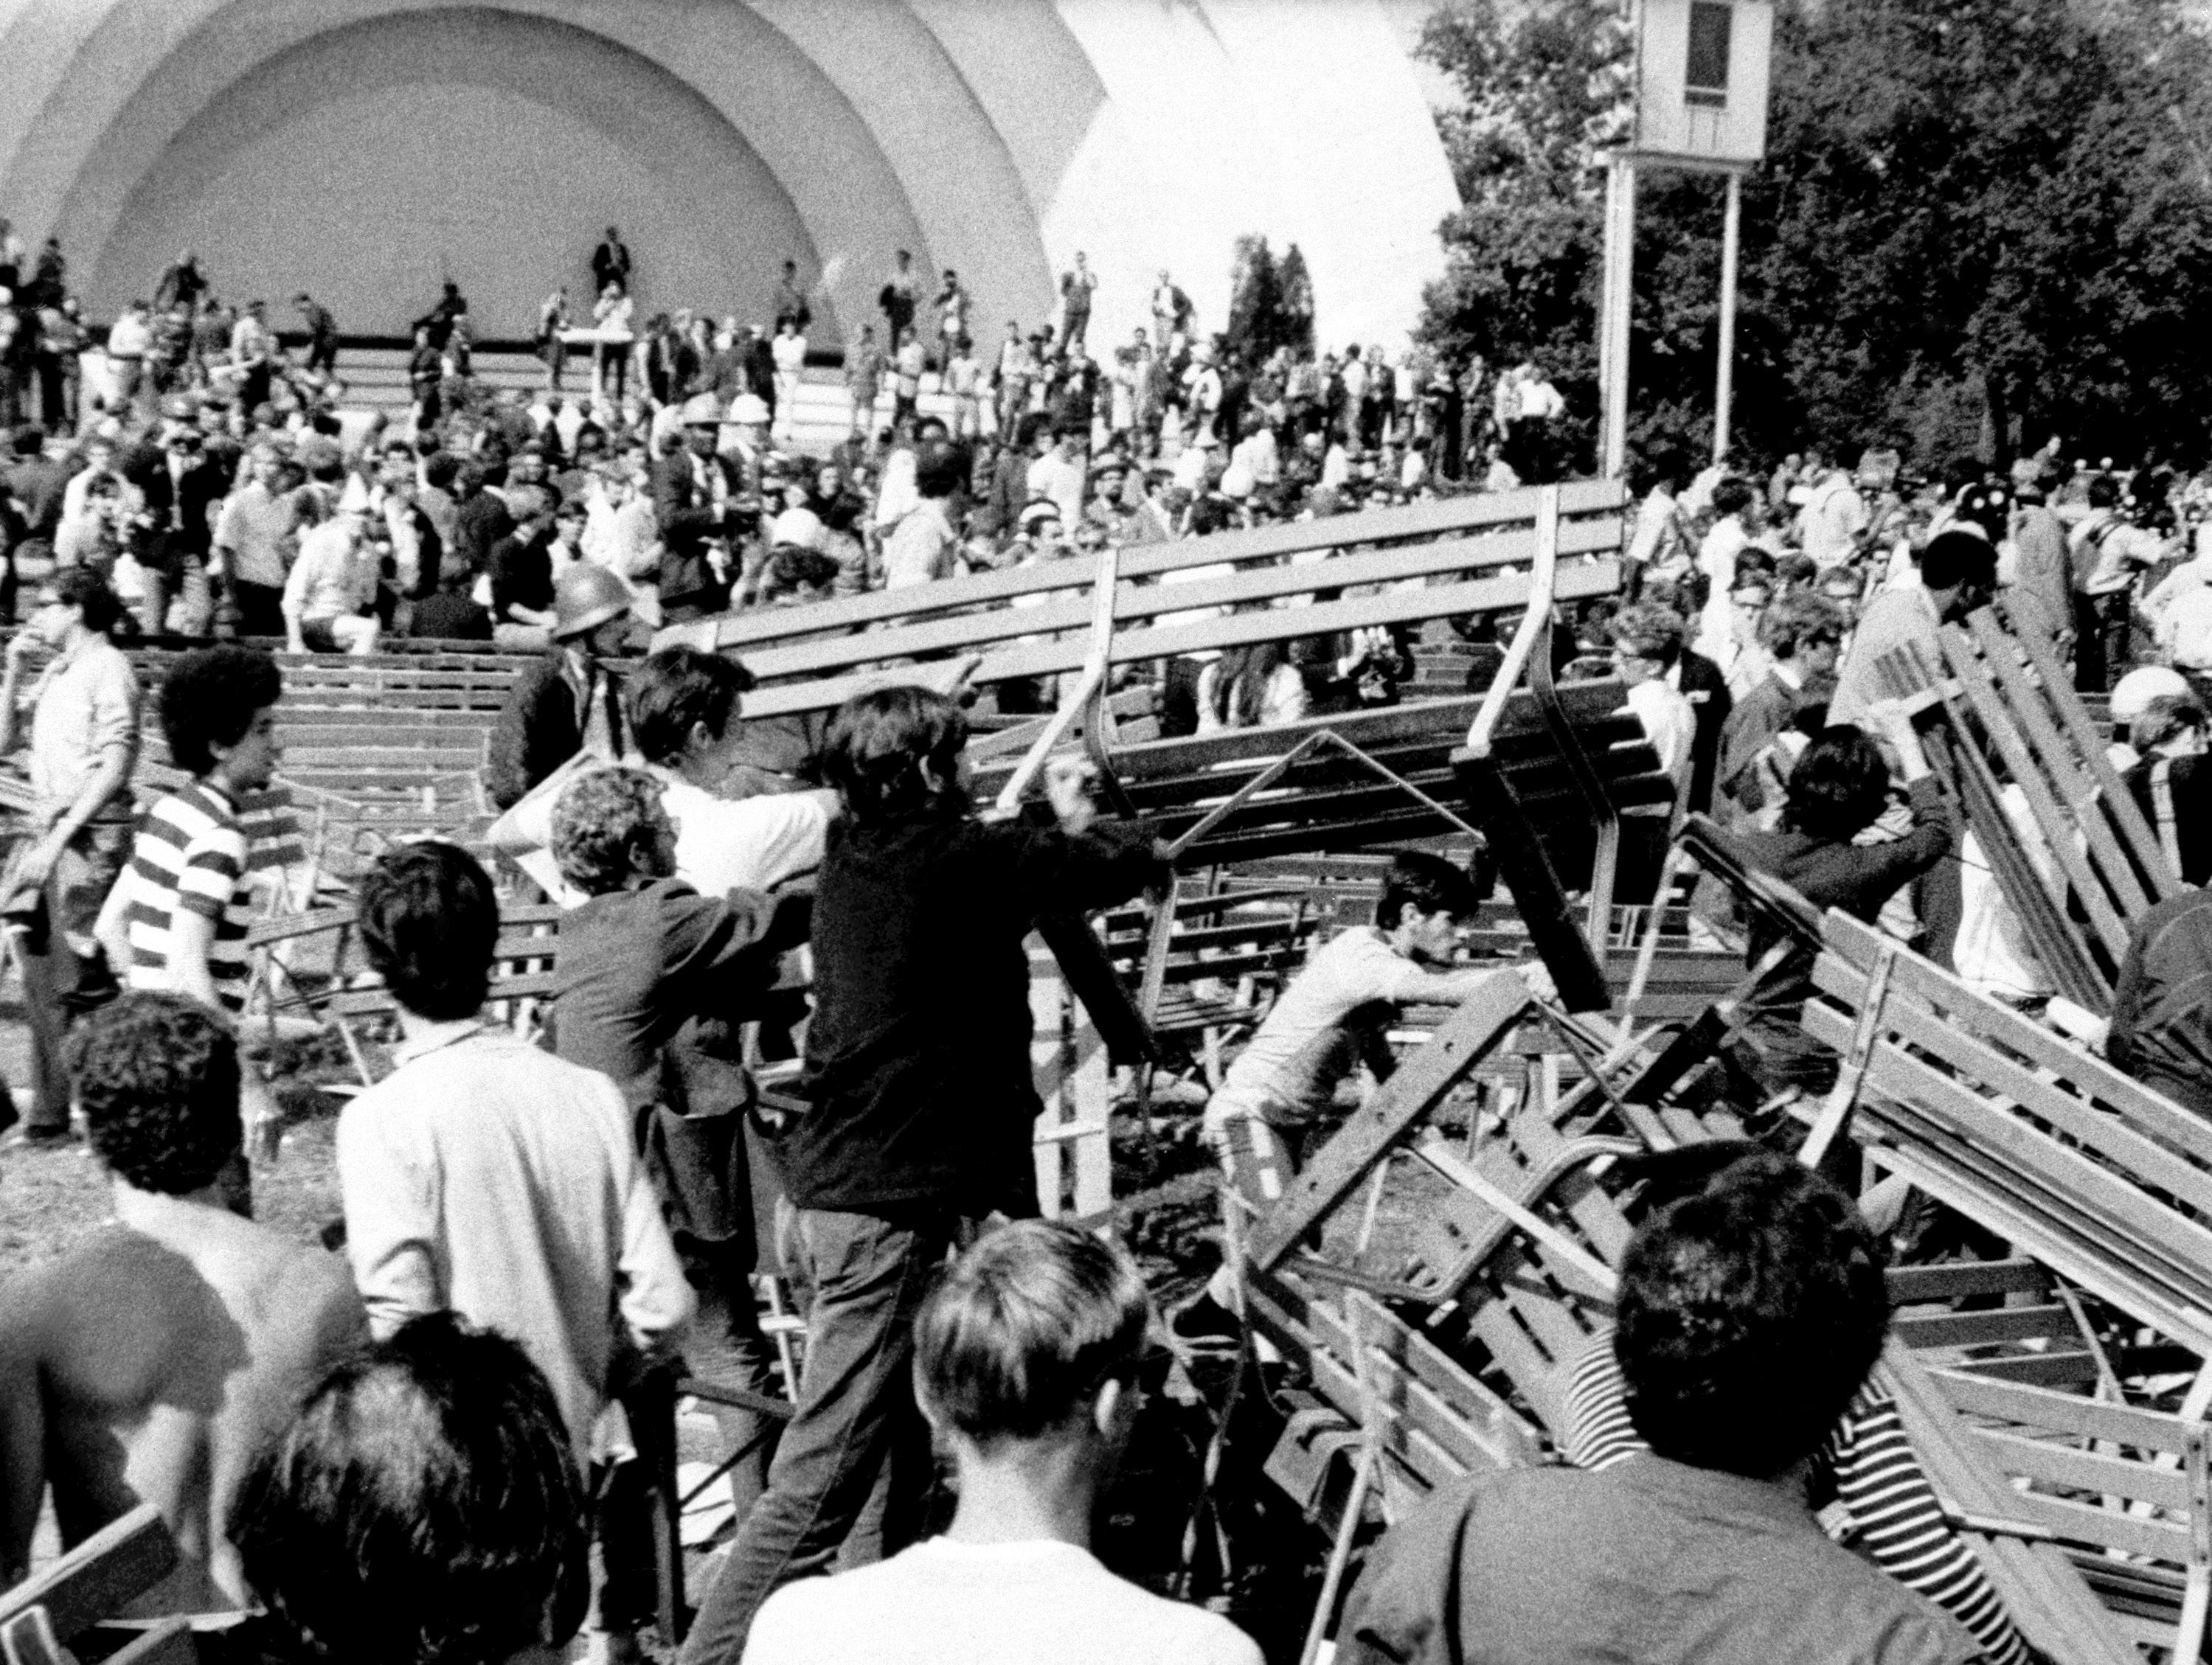 Demonstrators use park benches at Grant Park's Band Shell to construct a barricade against Chicago police and National Guardsmen in Chicago on August 28, 1968. The confrontation left many injured and arrested.